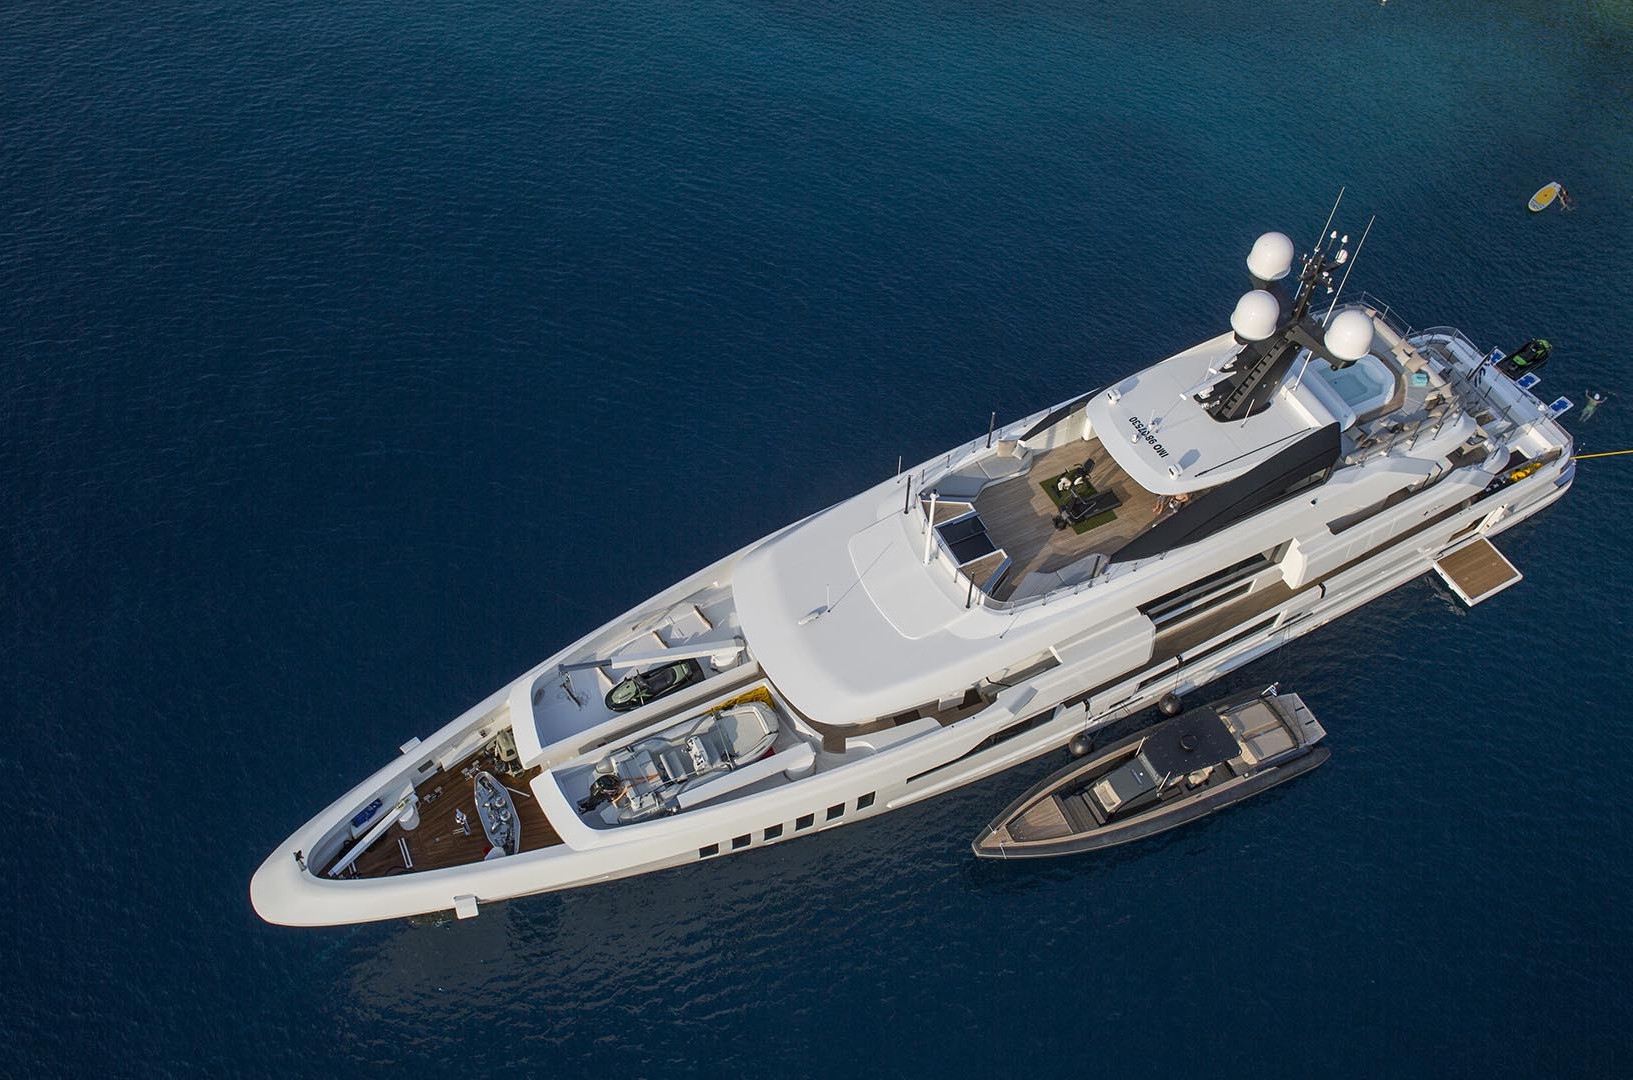 Yacht OURANOS - at anchor with all the water toys and tenders out